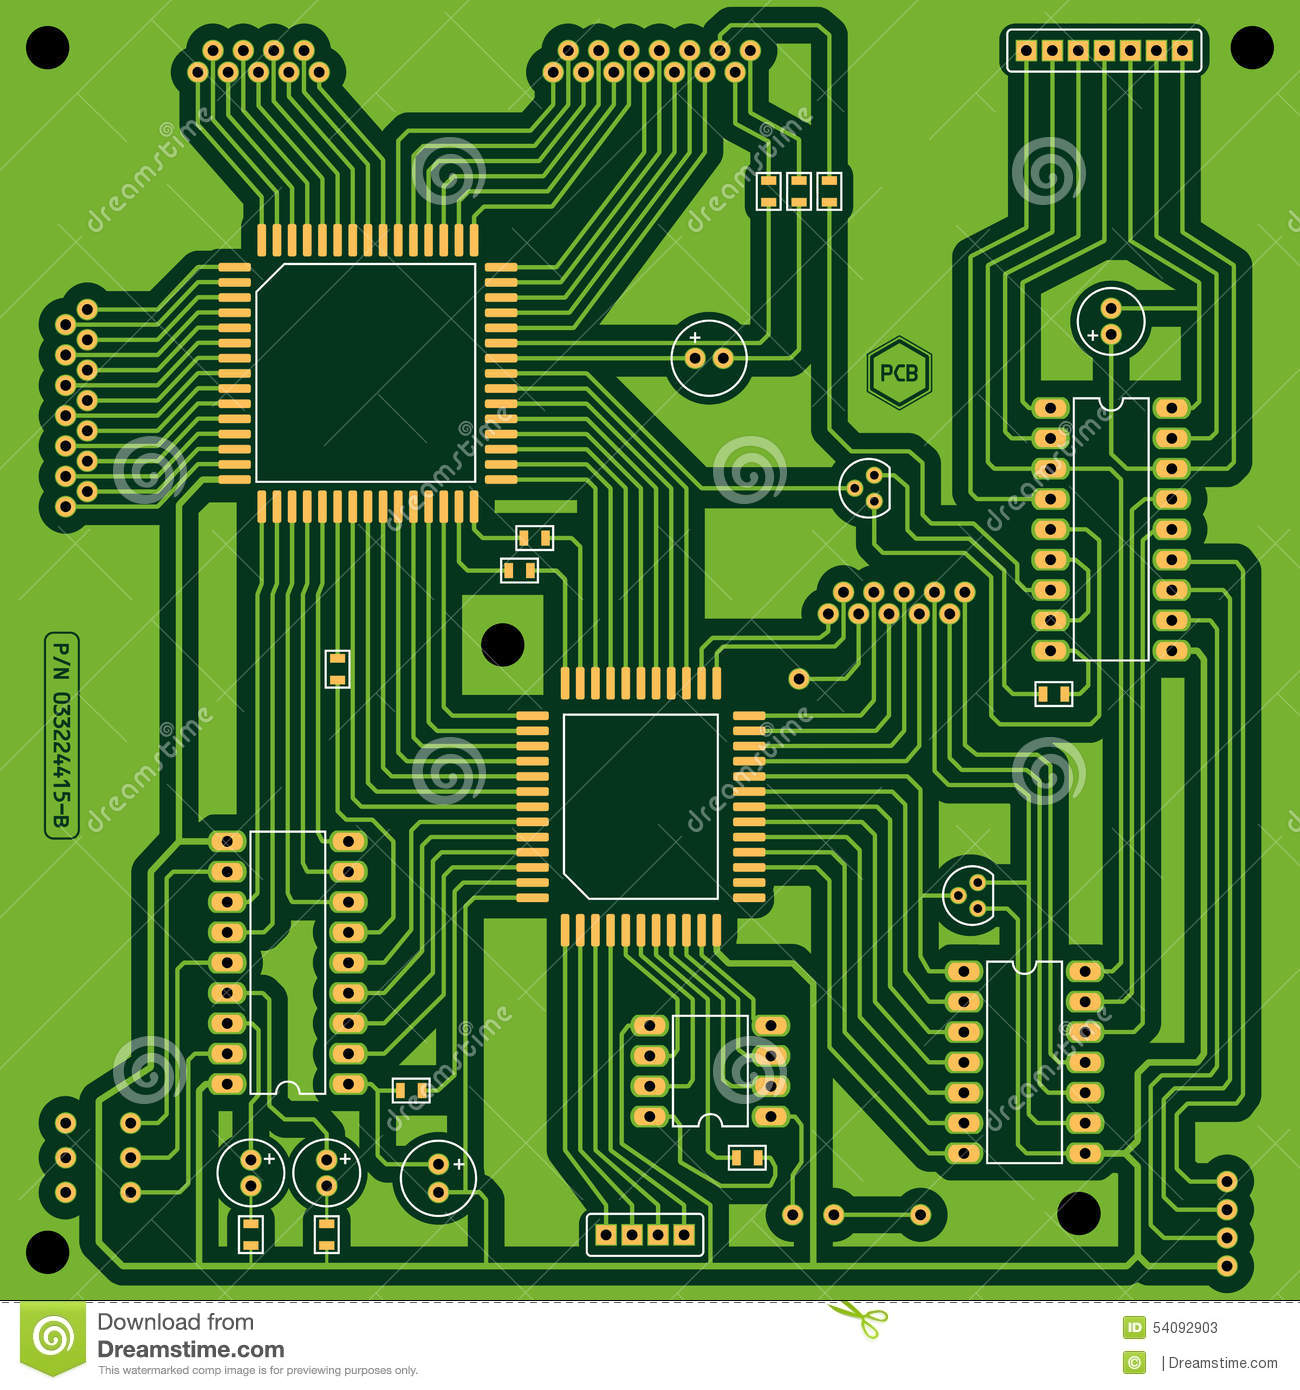 Green Circuit Board Clip Art Best Secret Wiring Diagram Pics Photos Desktop Wallpapers Printed Pictures Pcb Stock Vector Drawing Design